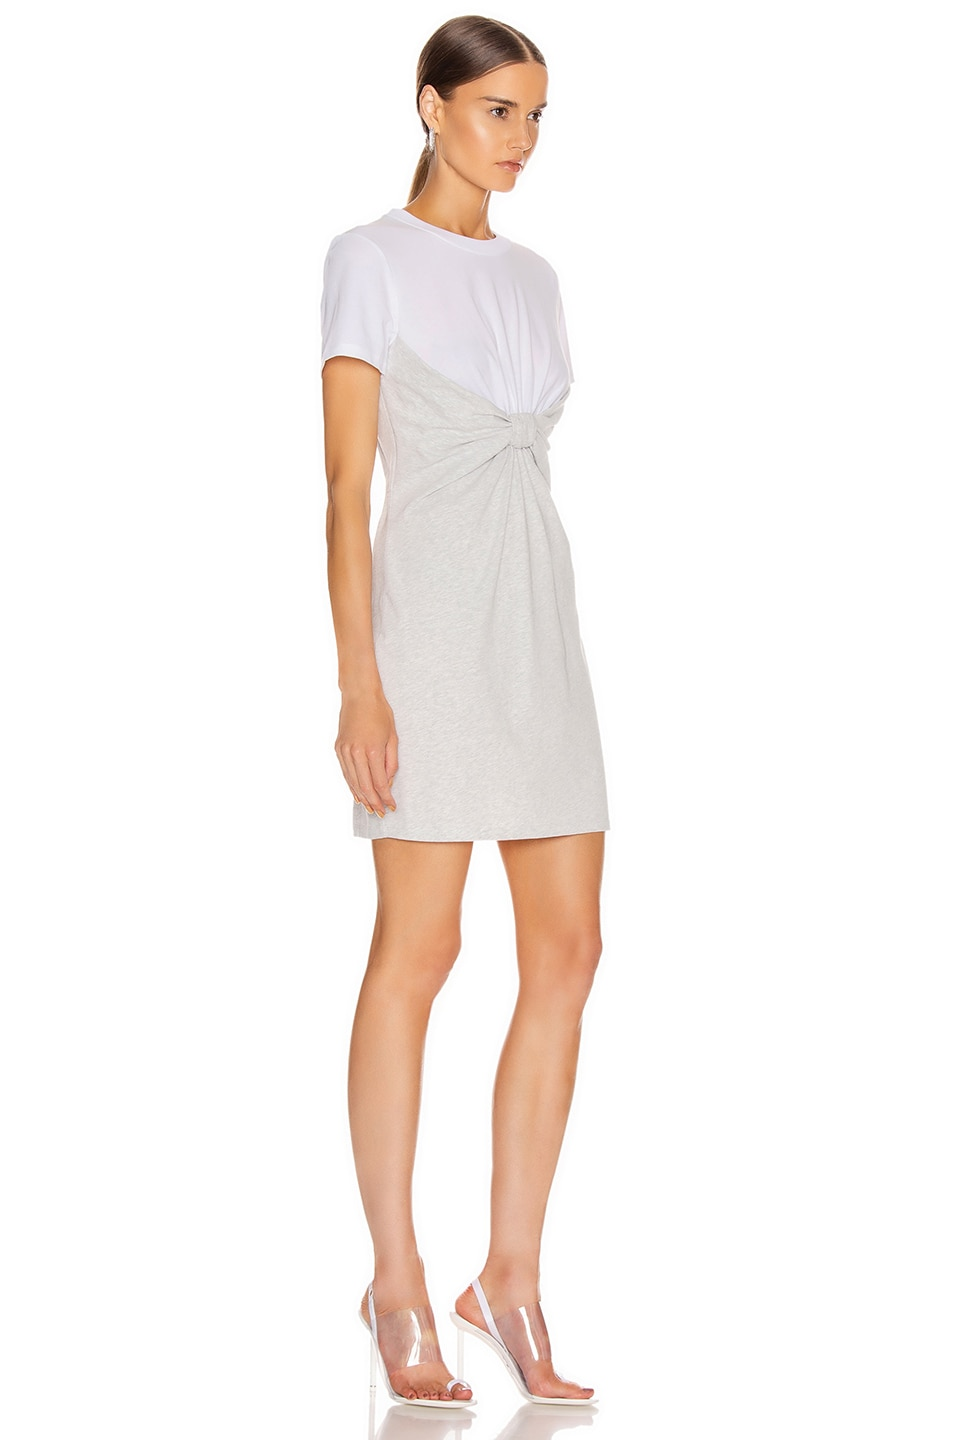 Image 2 of T by Alexander Wang High Twist Knot Dress in White & Light Heather Grey